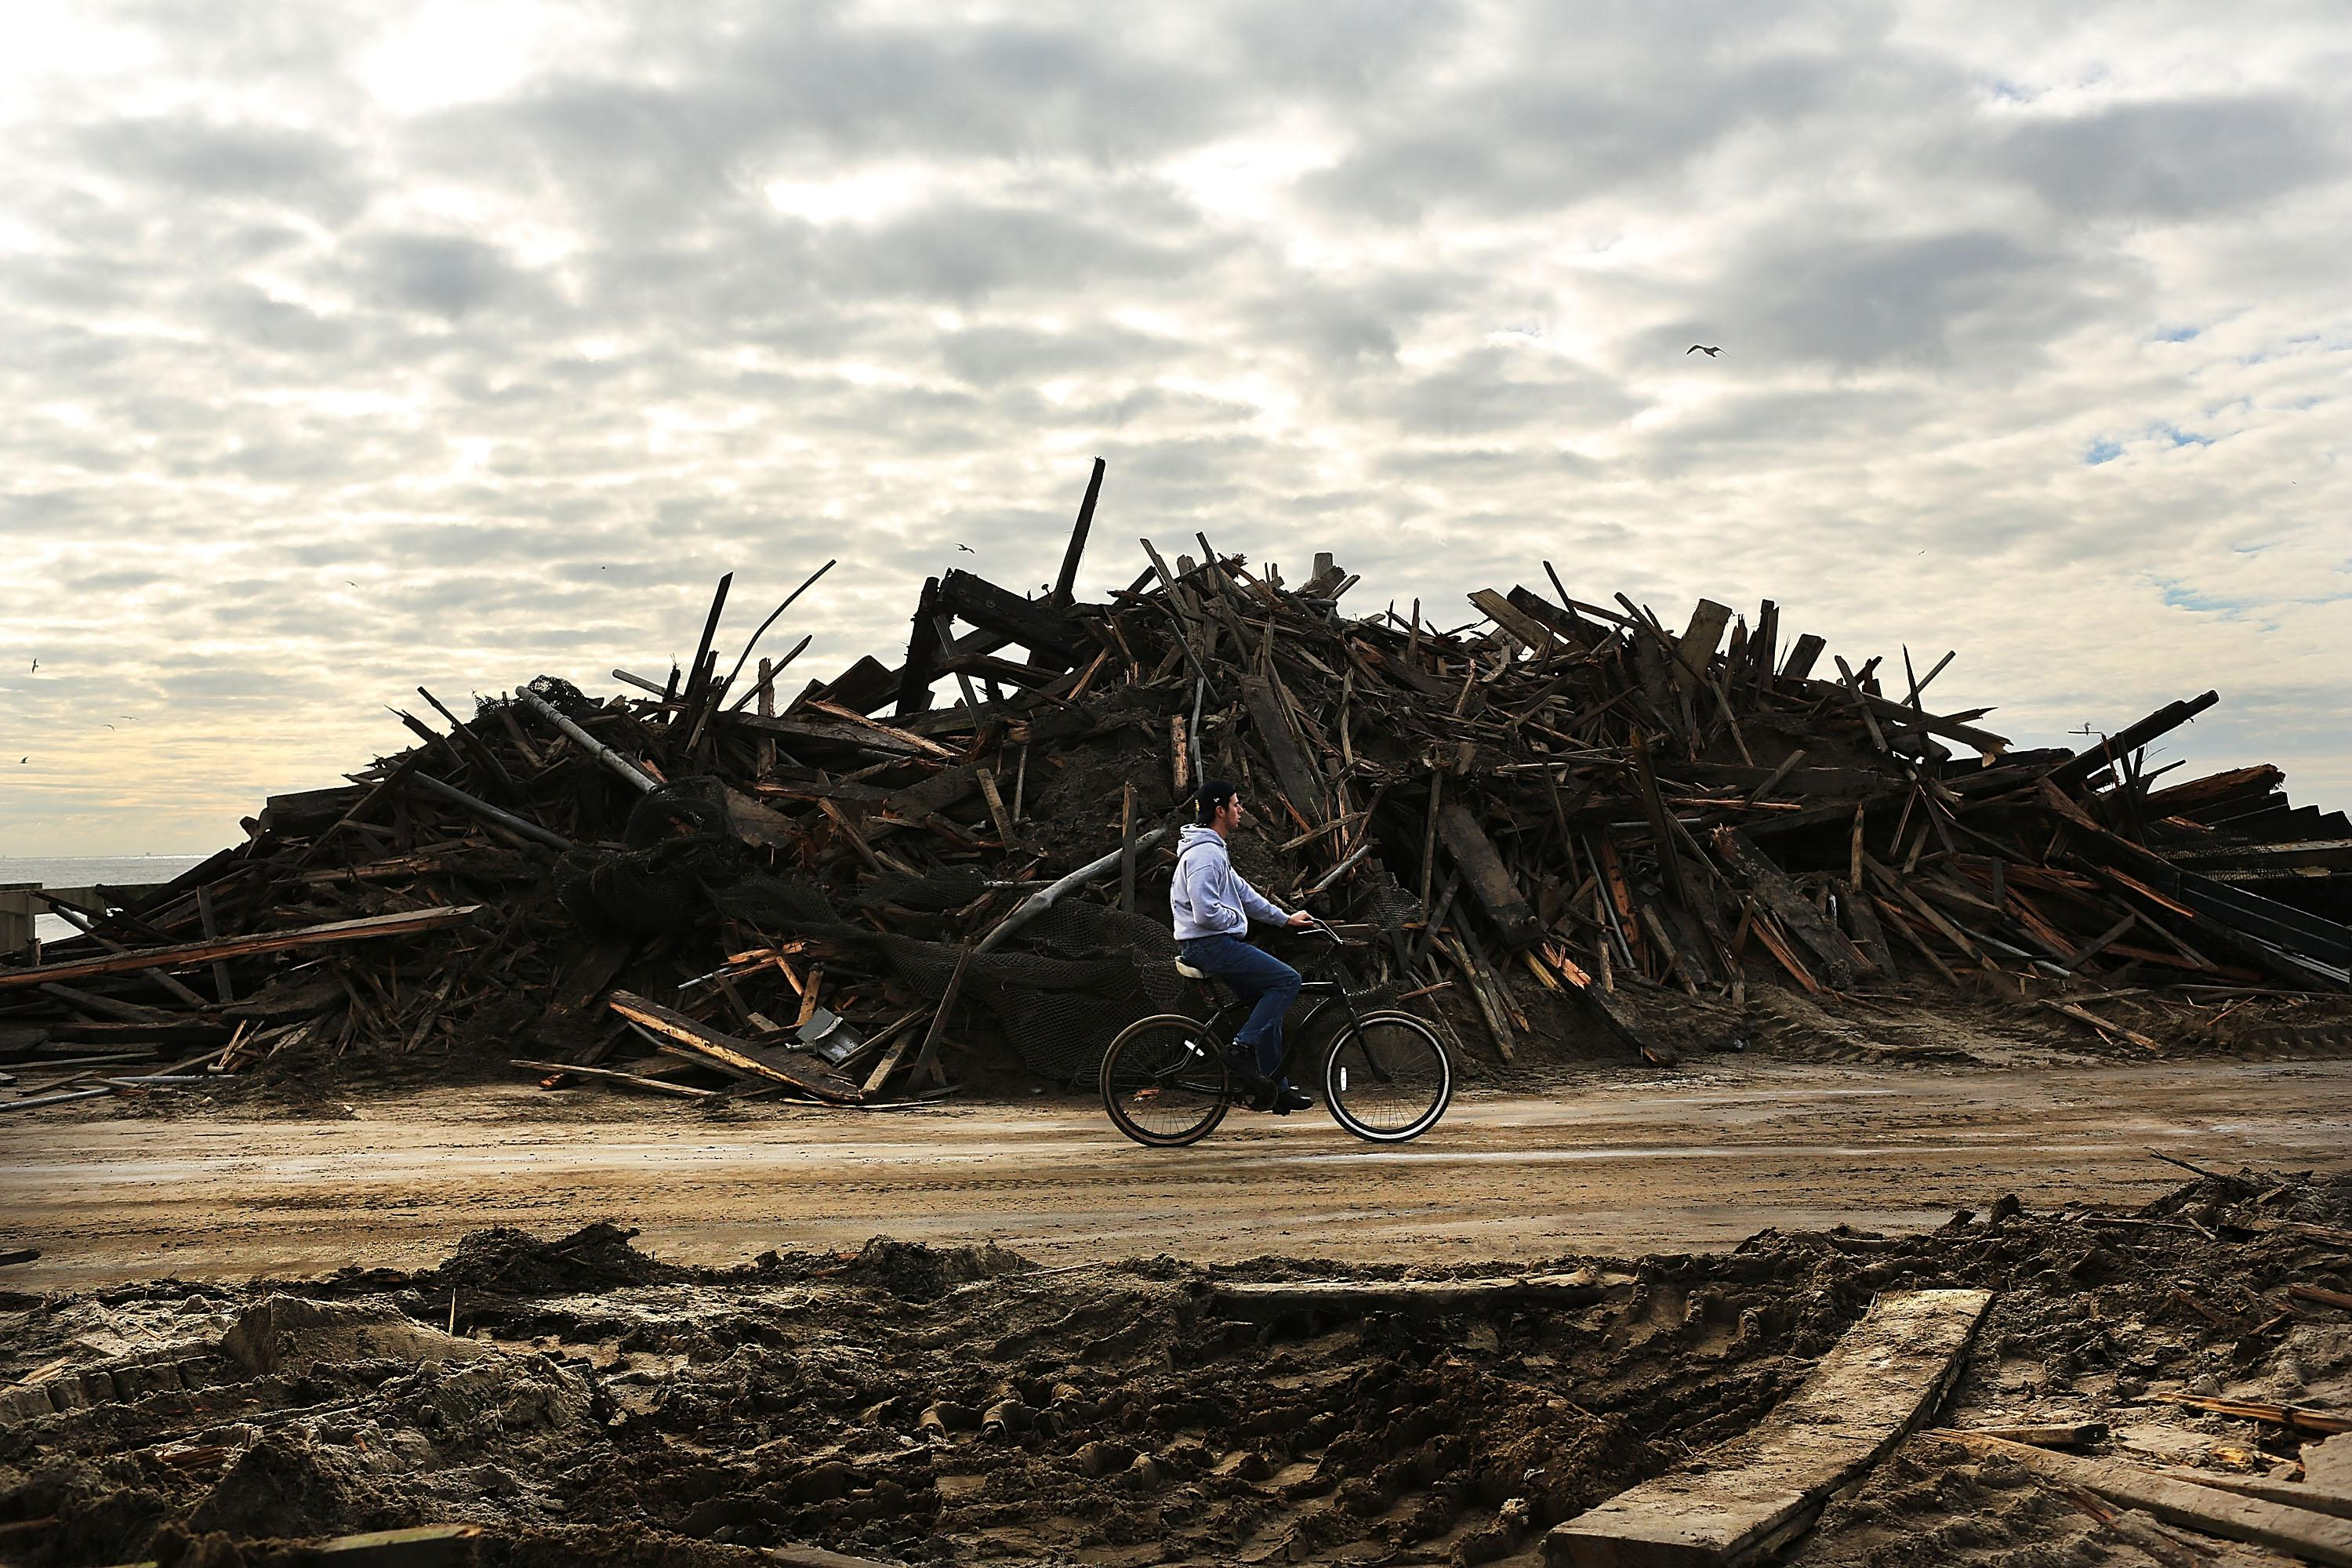 A man rides his bike through the heavily damaged Rockaway neighborhood, in Queens where a large section of the iconic boardwalk was washed away on November 2, 2012 in New York.